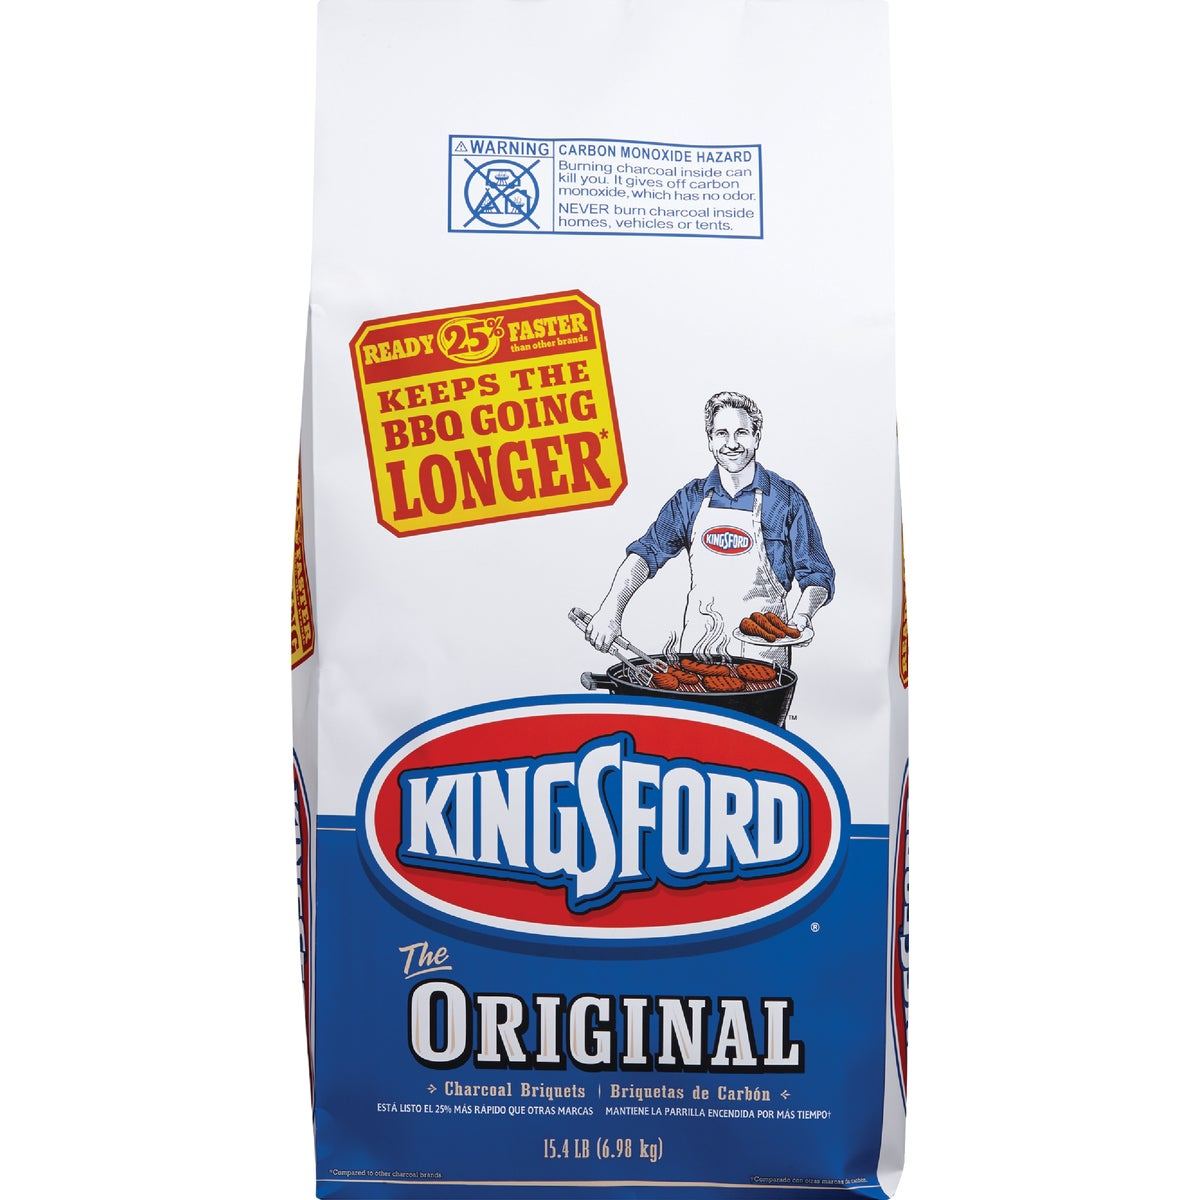 16.6LB KINGSFRD CHARCOAL - 30451 by Clorox/ Kingsford